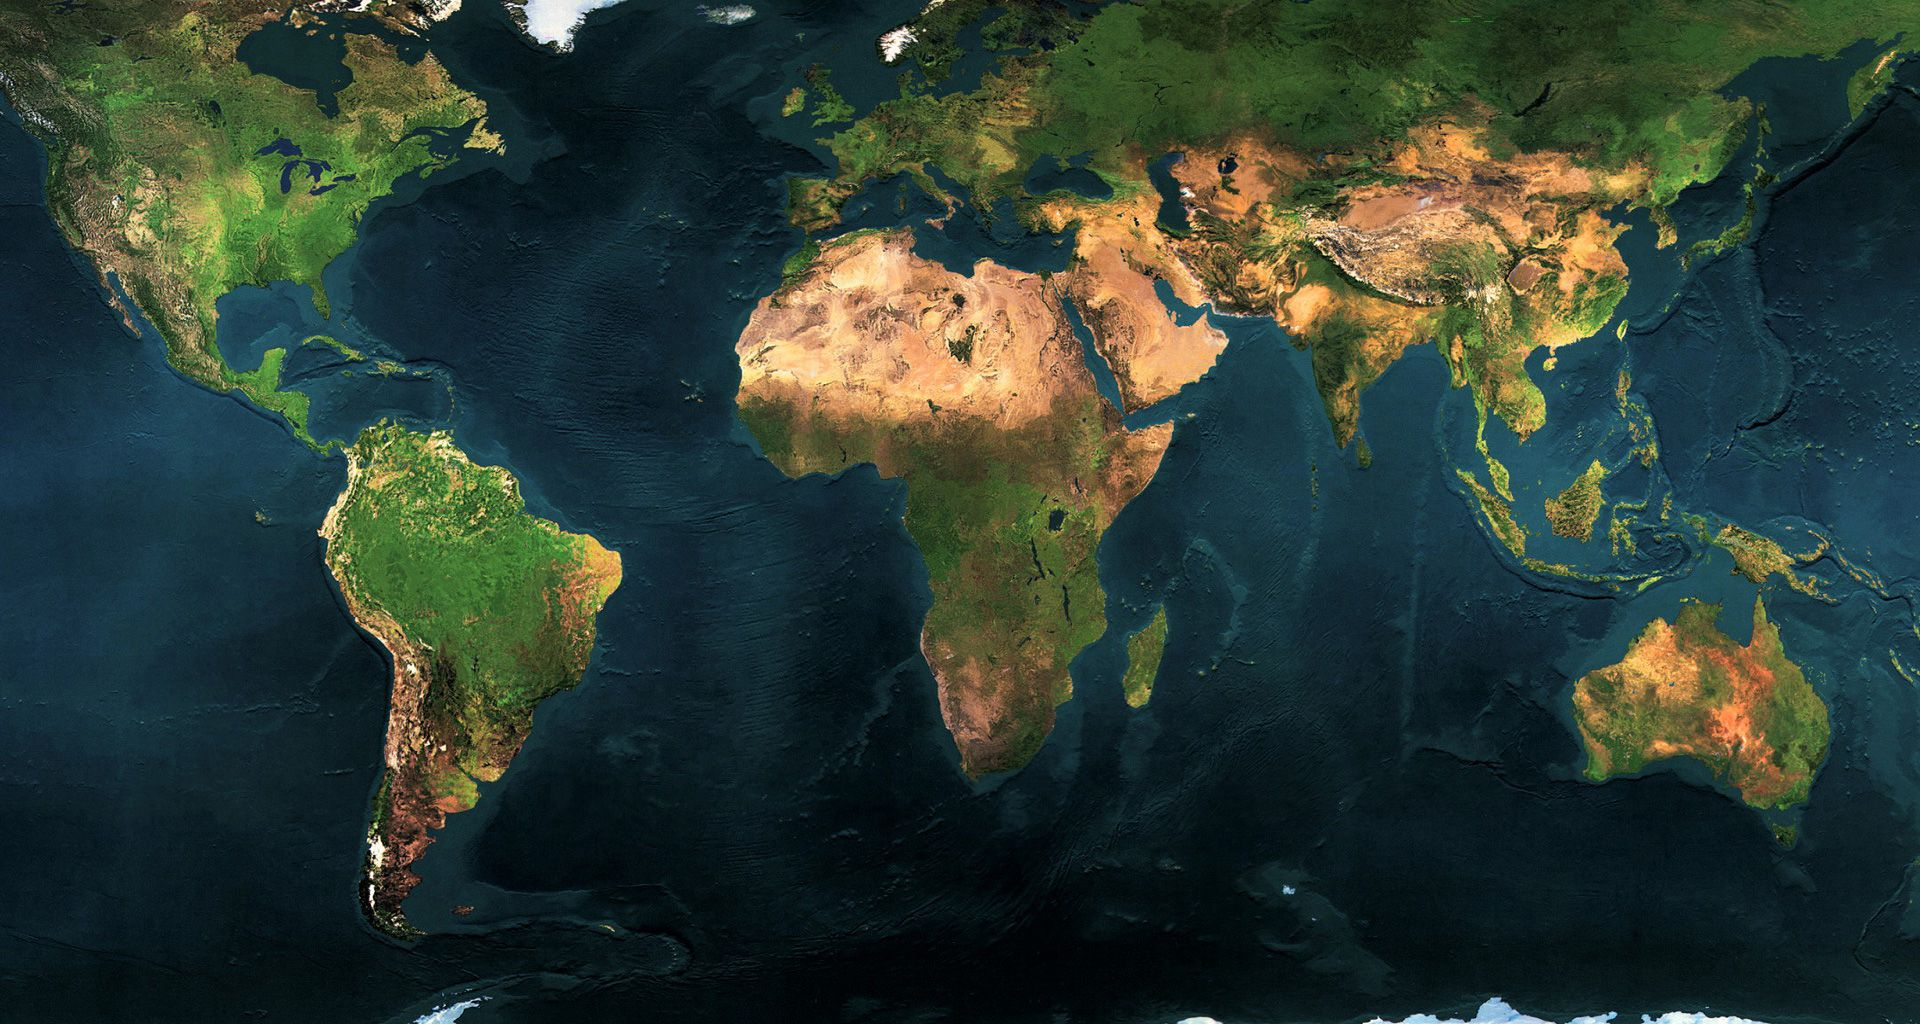 HD world map wallpaper | Wallpapers in 2019 | World map ...